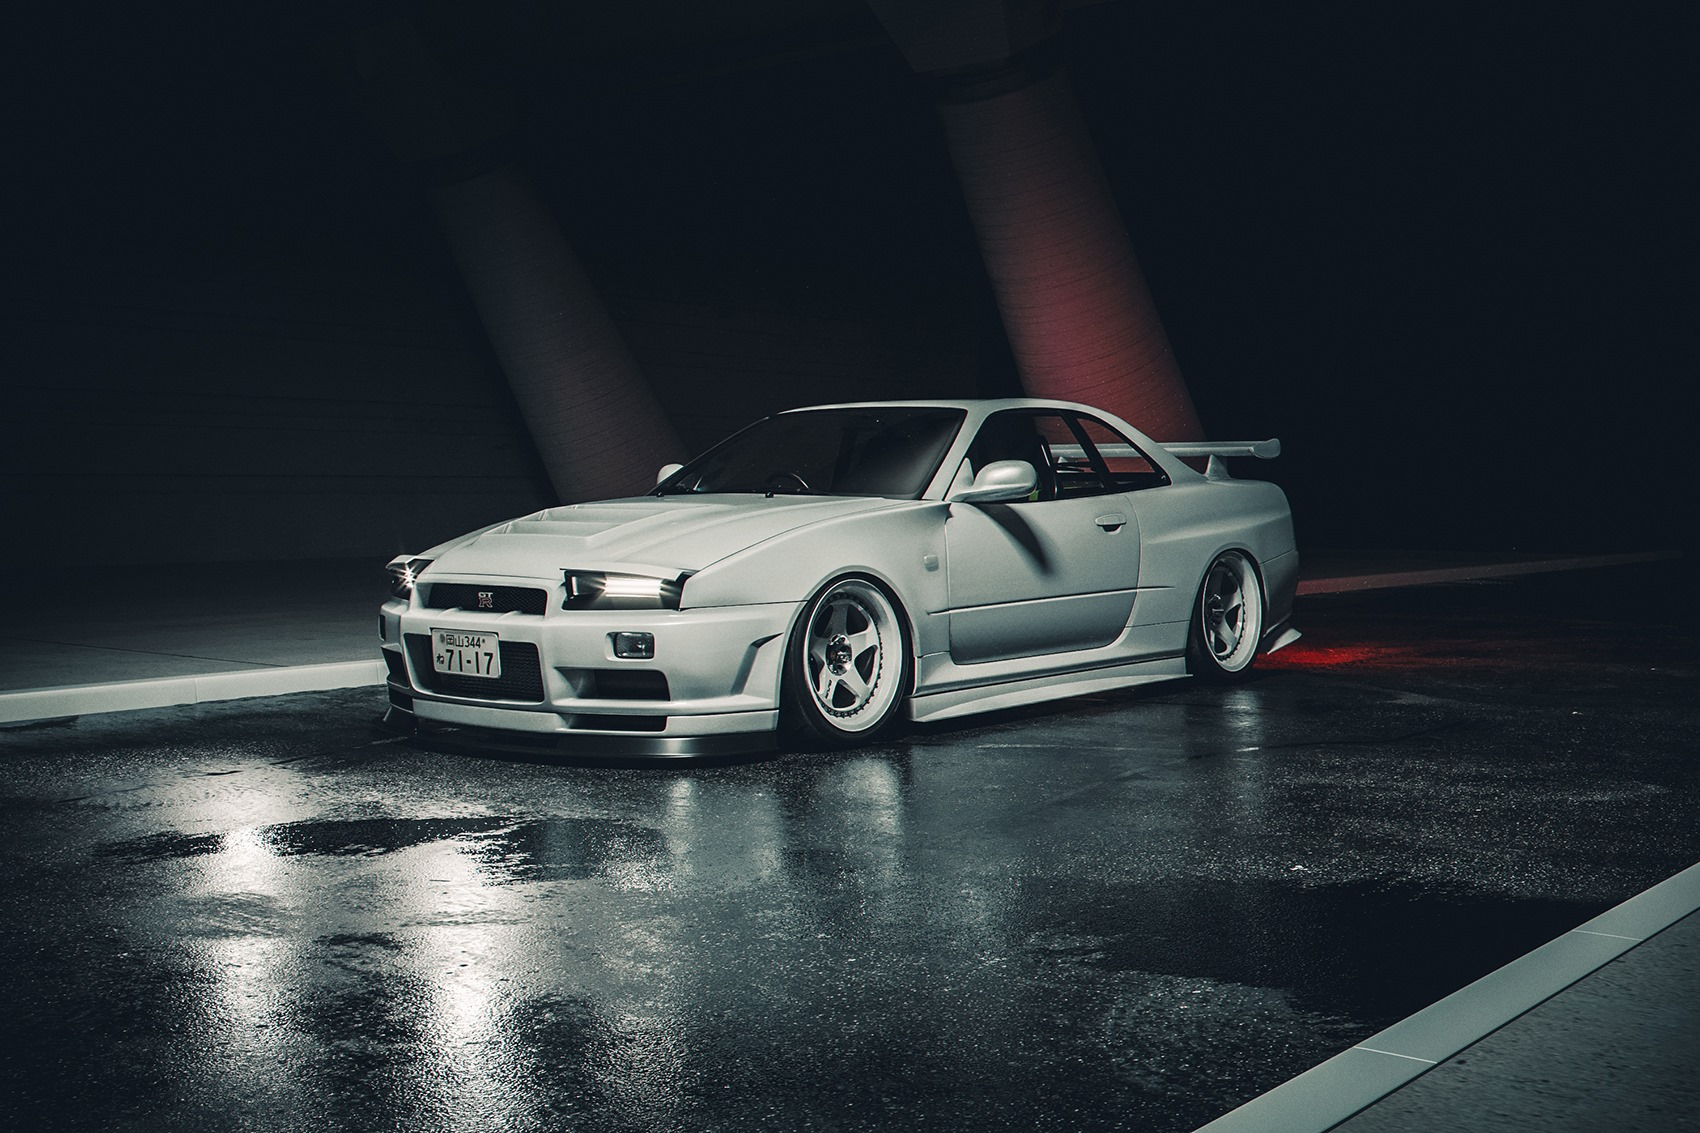 Nissan-GT-R-R34-pop-up-headligths-1